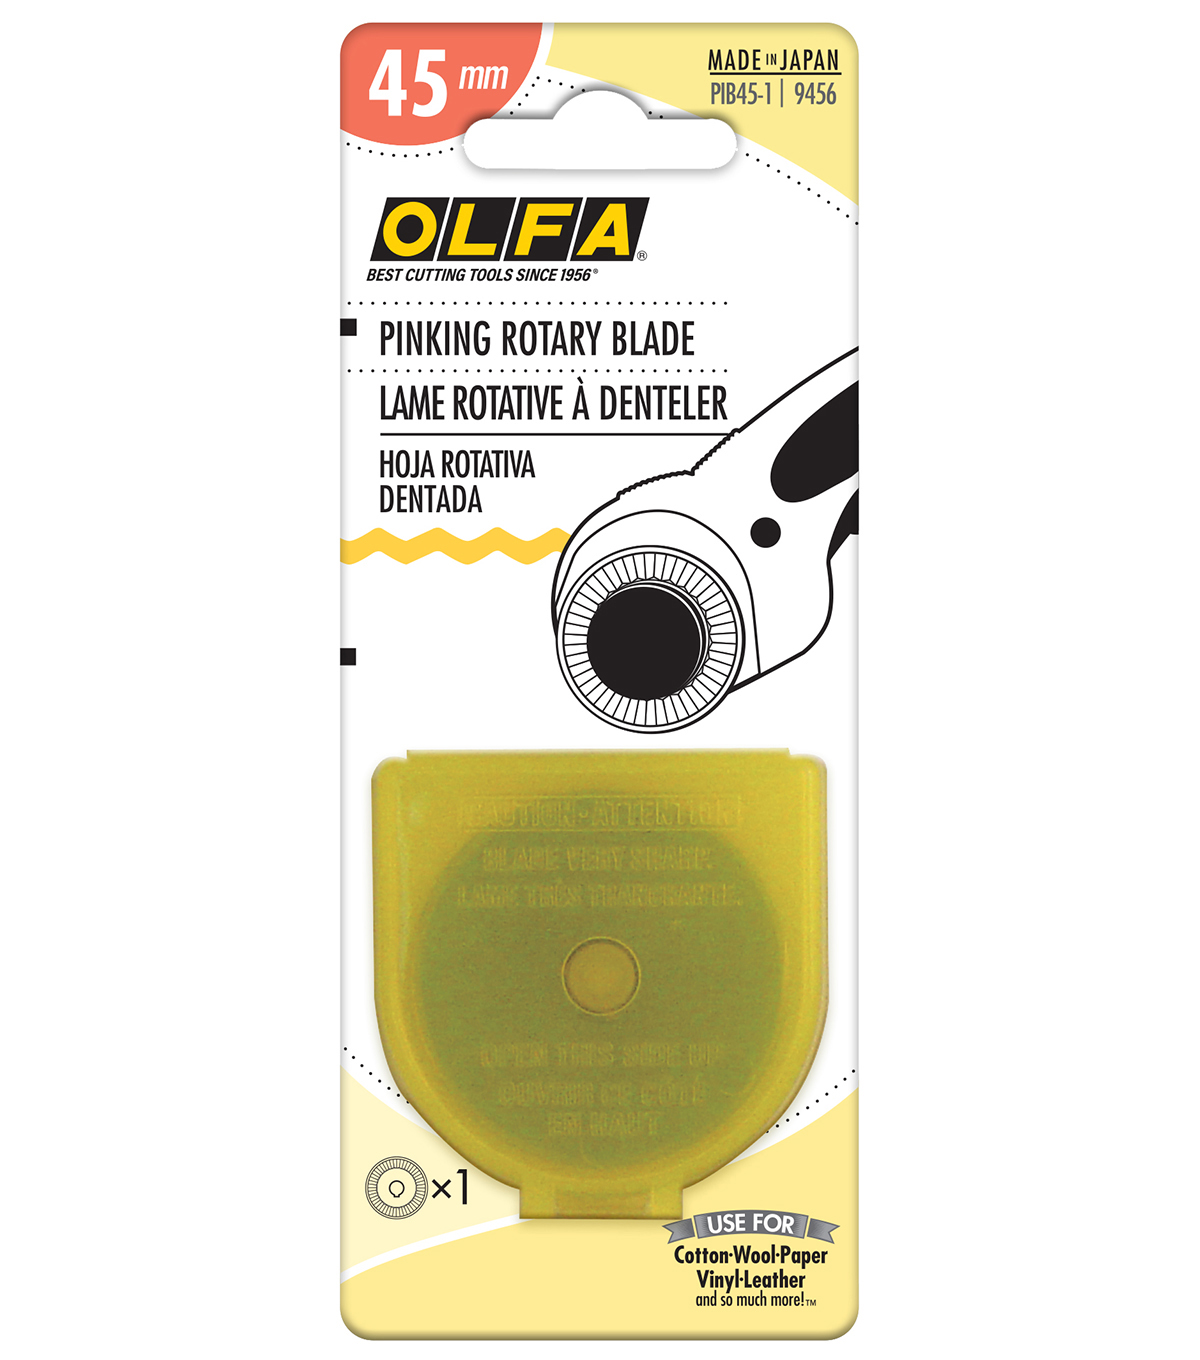 Olfa Rotary Pinking Spare Blade-45mm